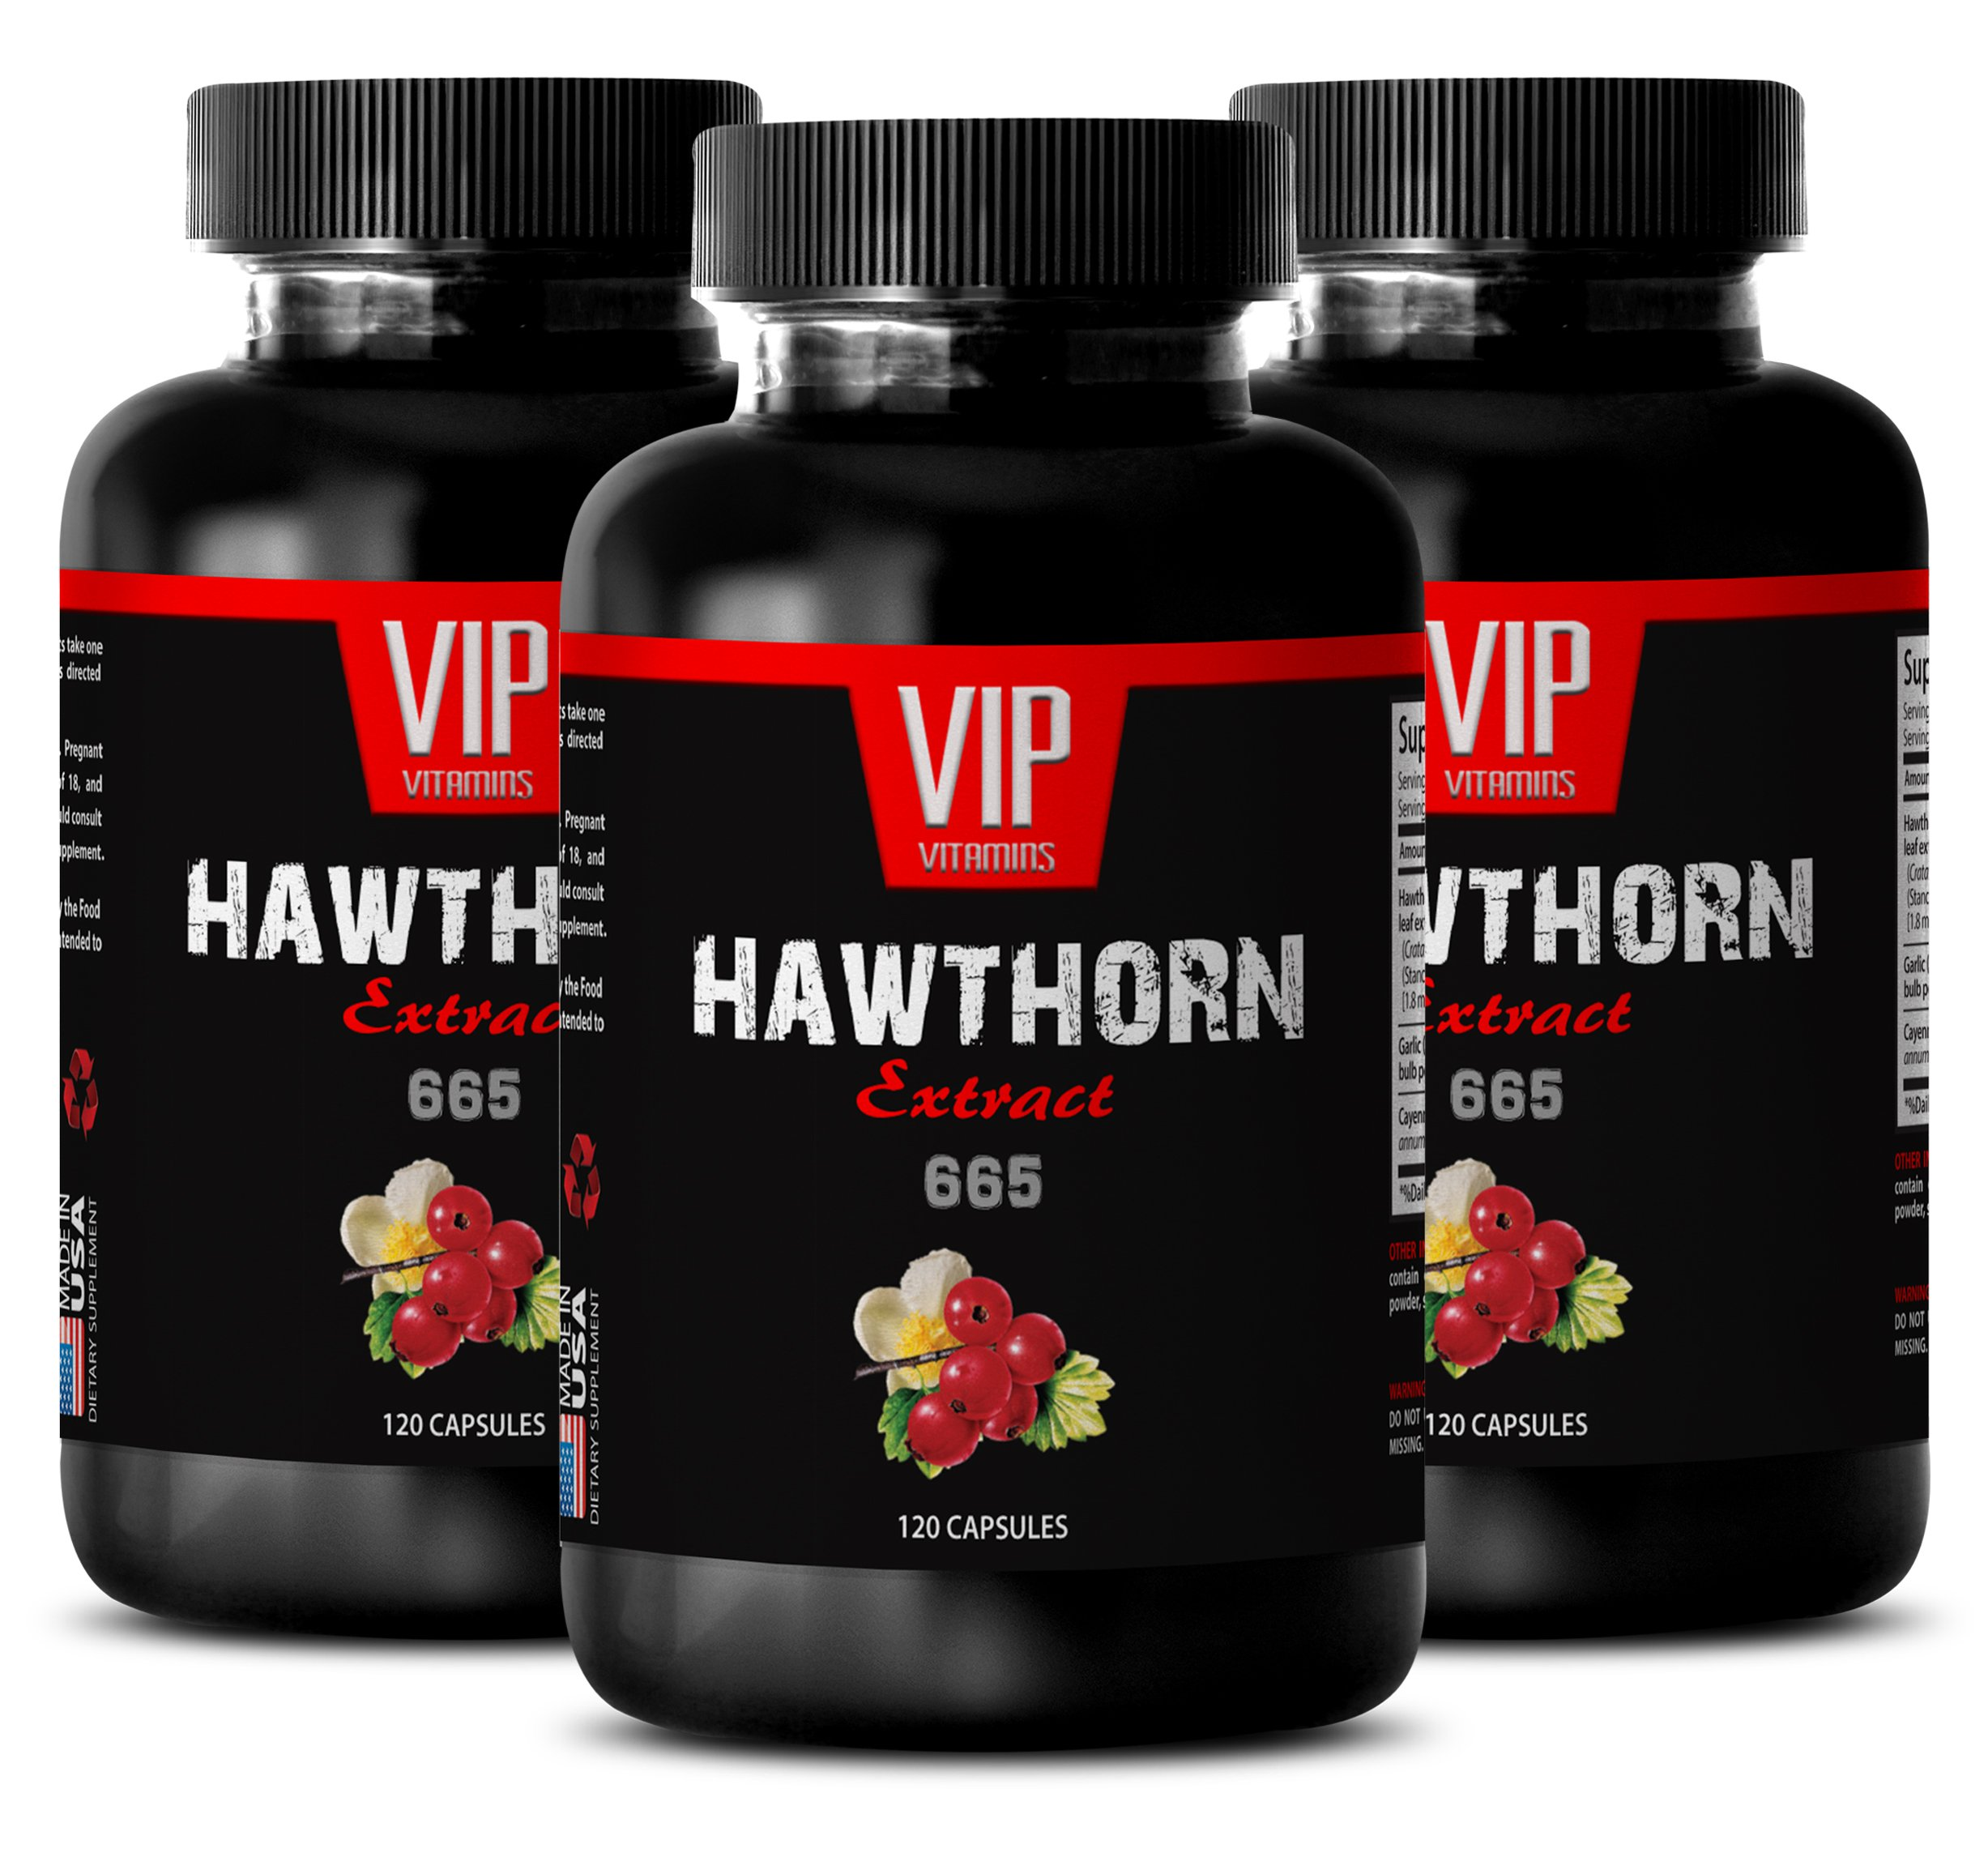 herbal supplements for immune system - HAWTHORN EXTRACT 665 - Immunity booster - 3 Bottles 360 Capsules